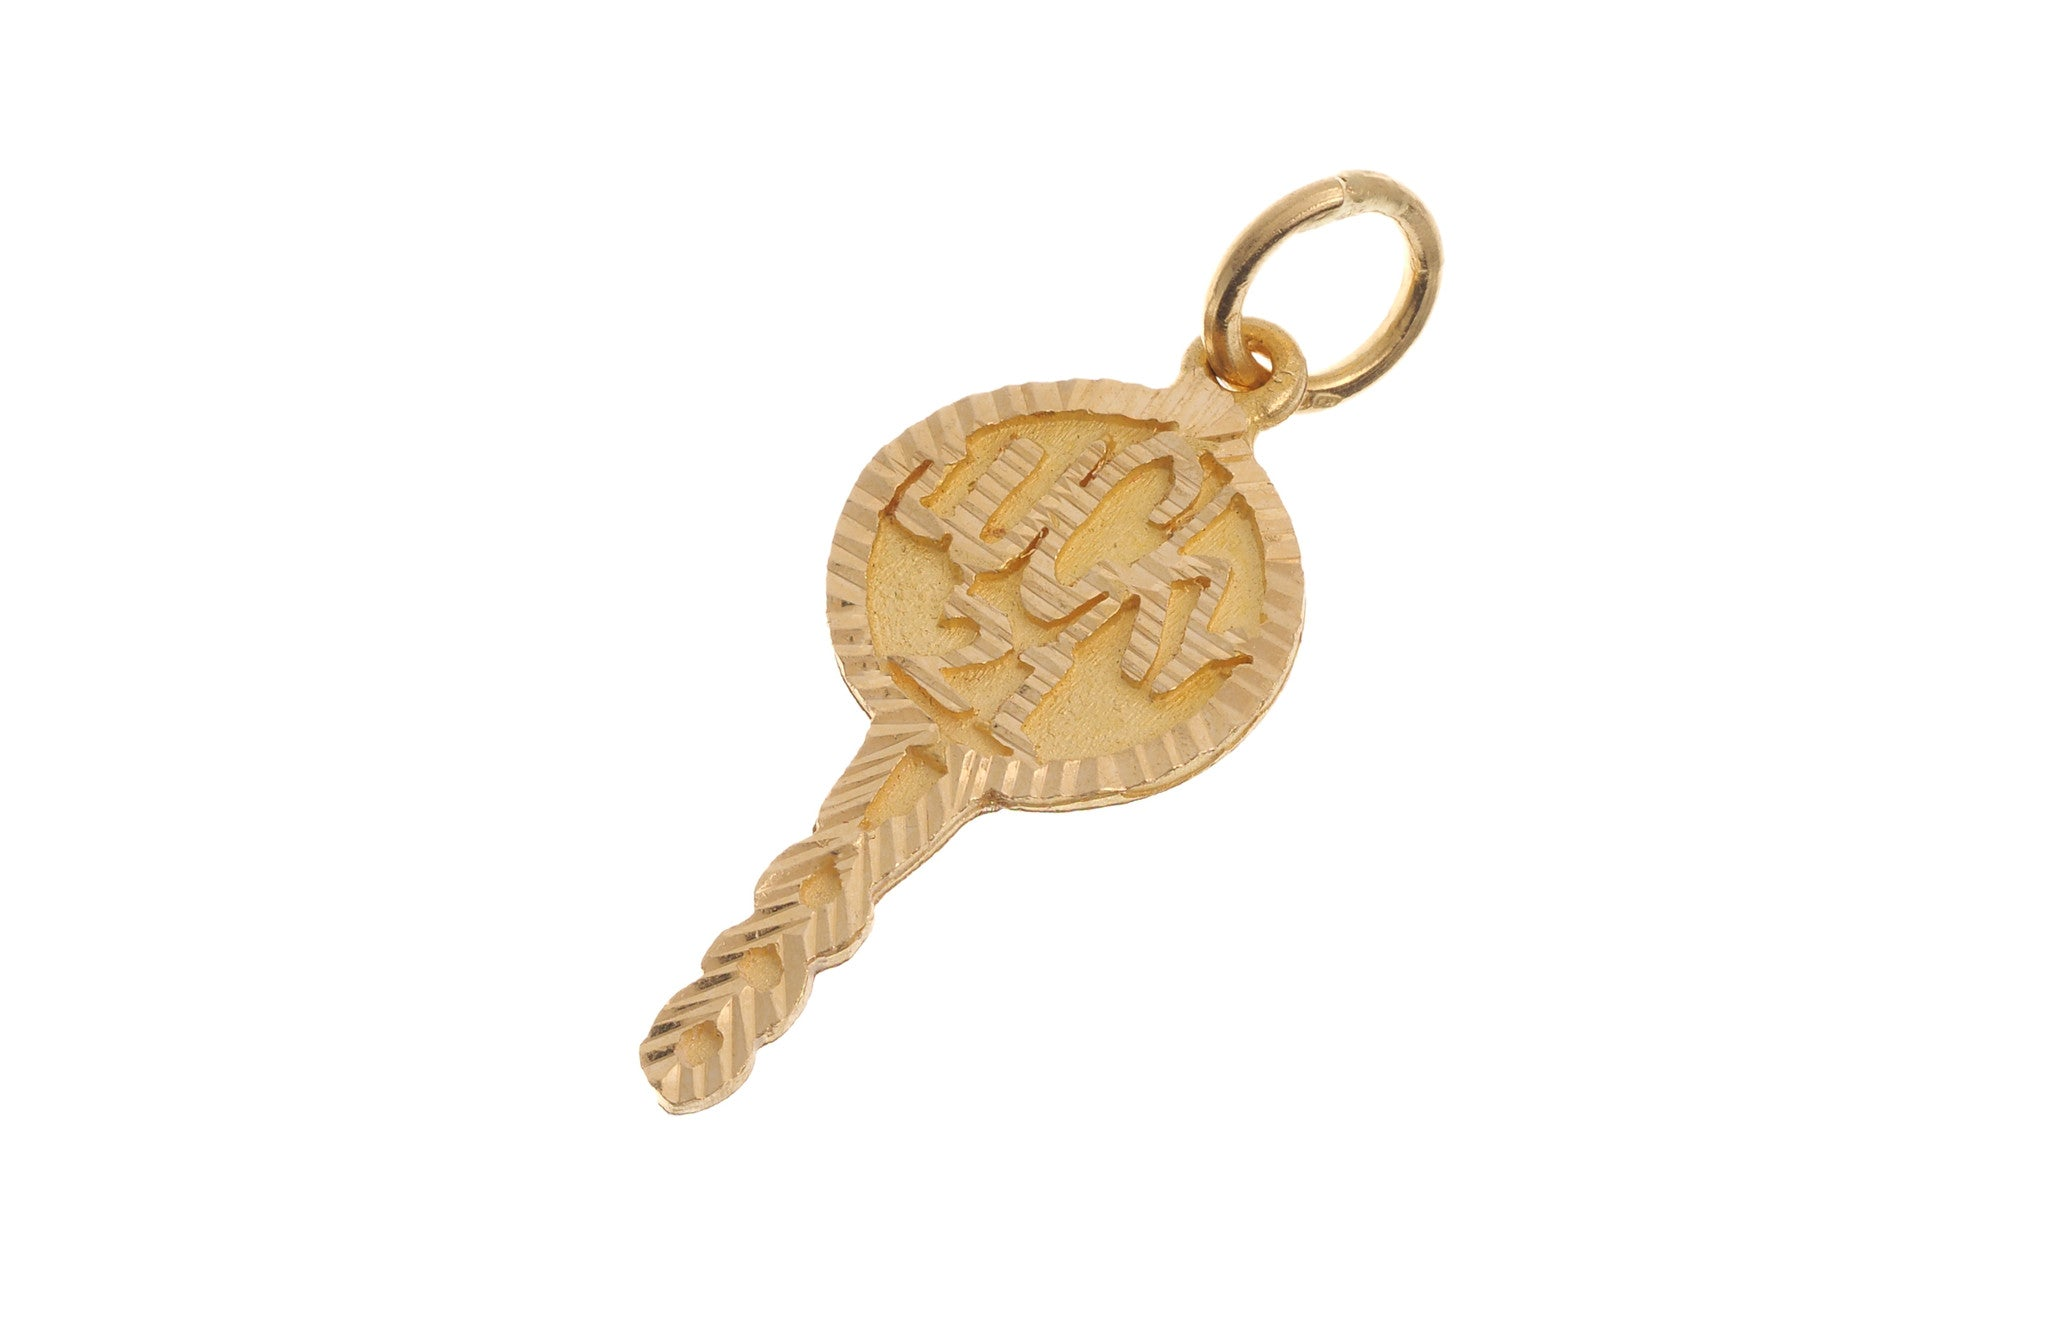 22ct Yellow Gold '21' Key Pendant (G5347), Minar Jewellers - 1